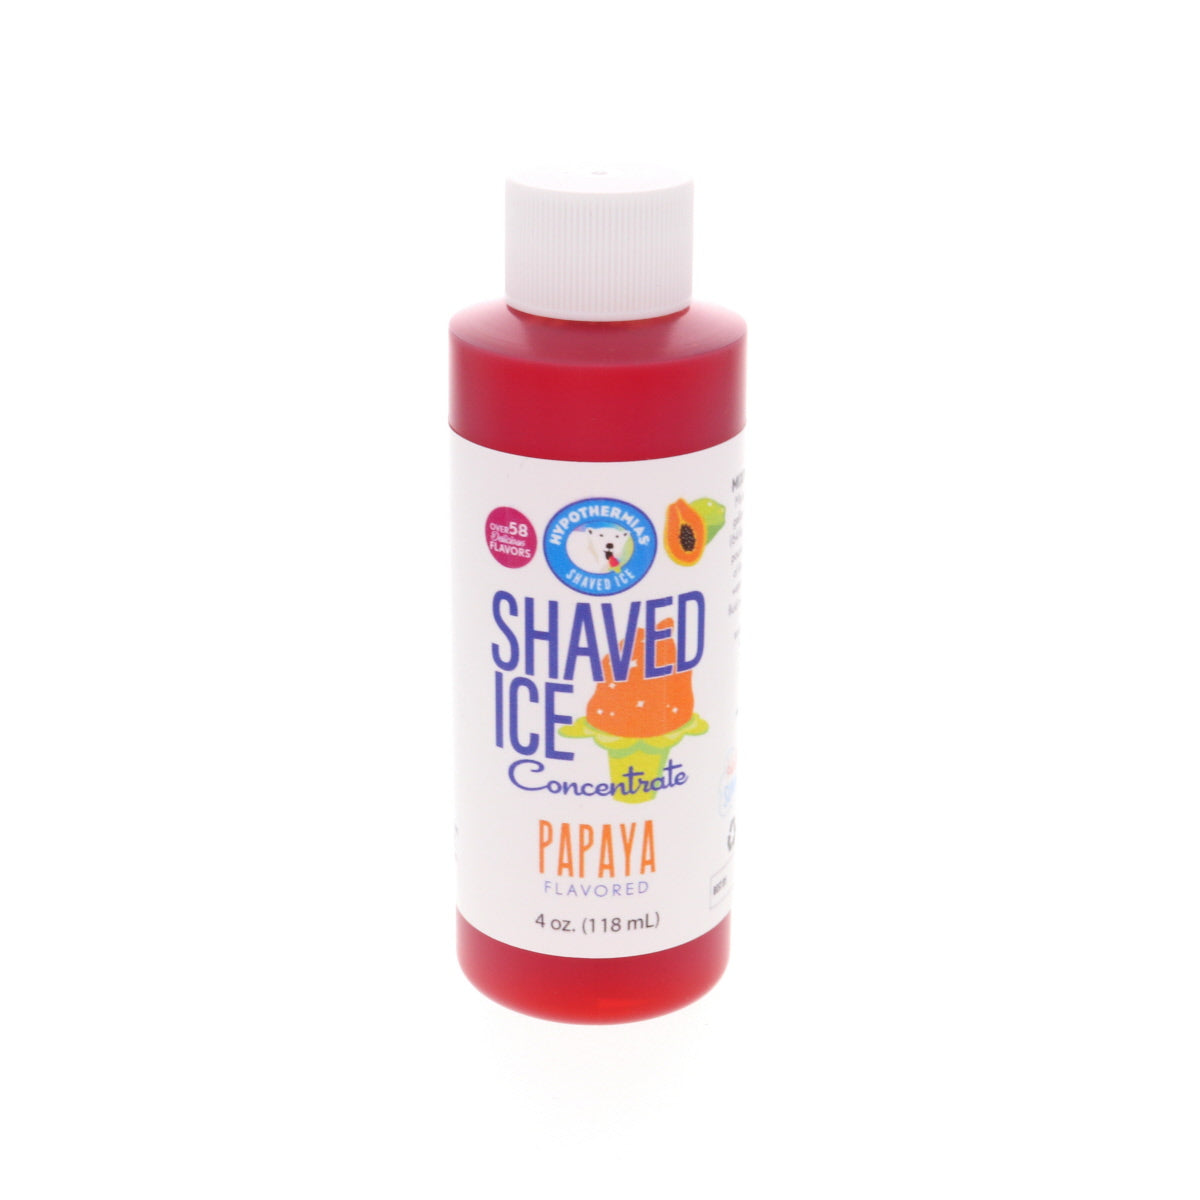 Papaya flavor syrup for shaved ice 4 Fl Oz